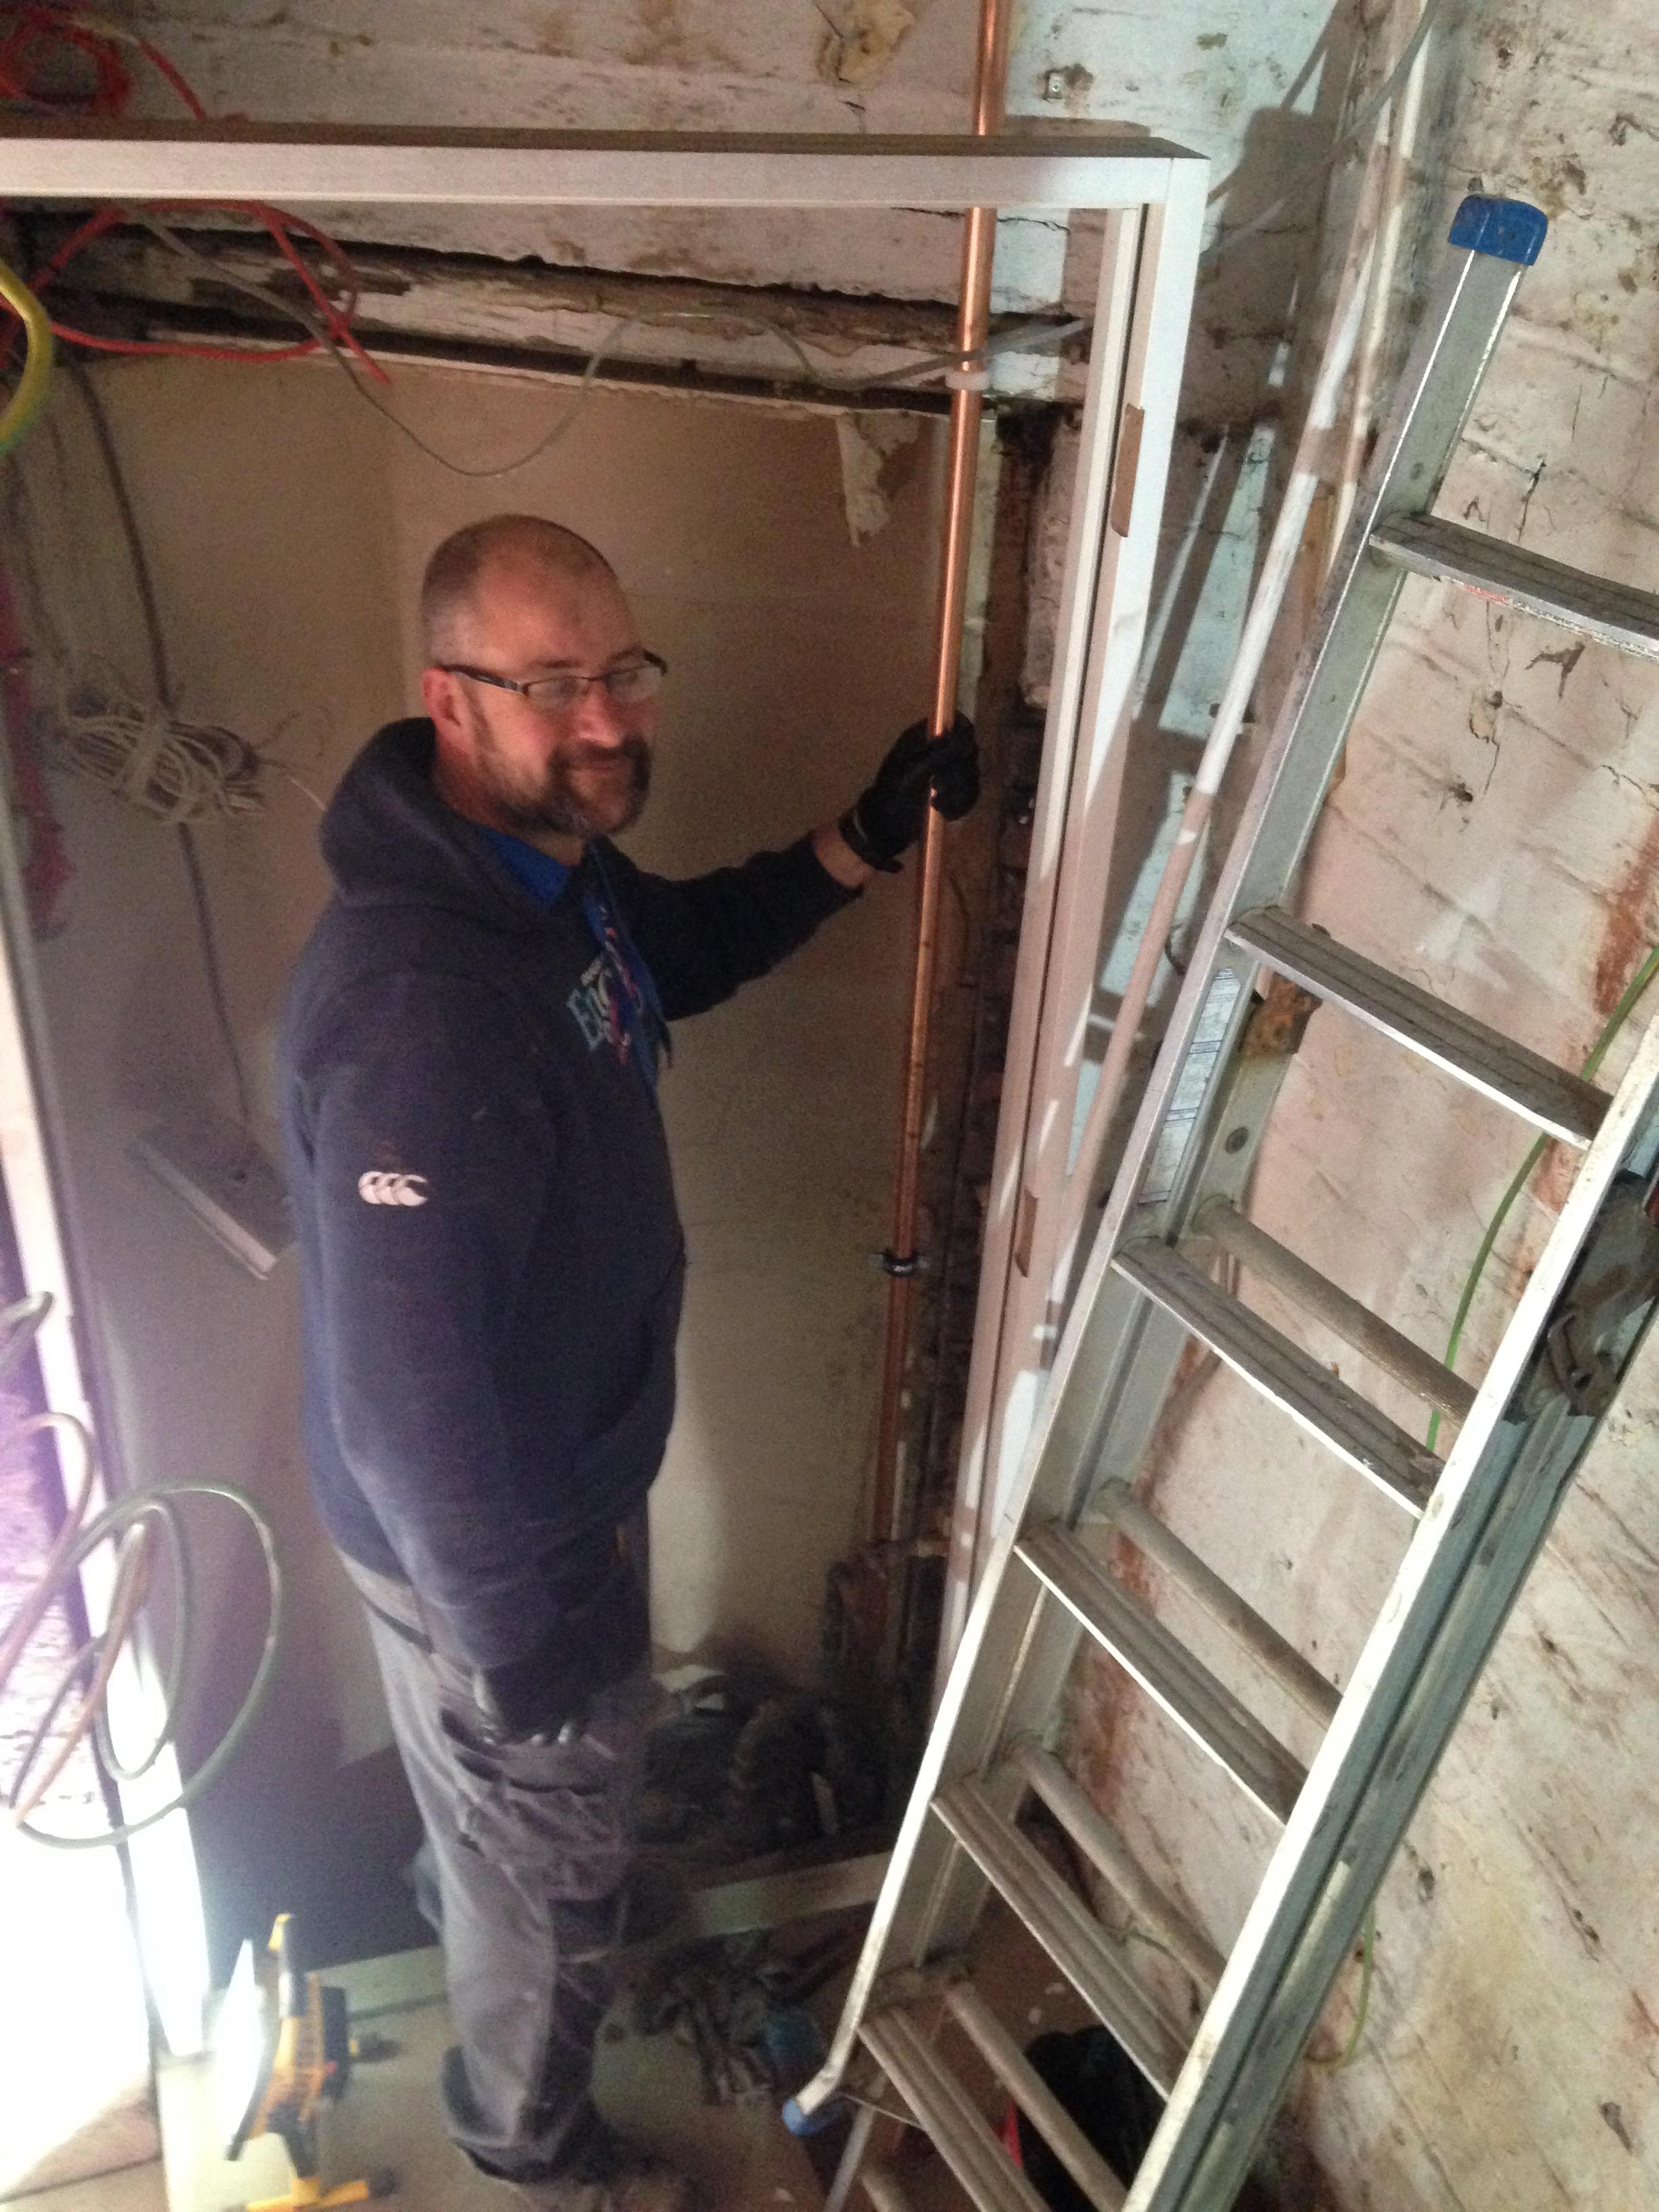 Roger Greensit provided all our plumbing input and made an excellent job despite being challenged with 10 inch concrete floors and very demanding clients!